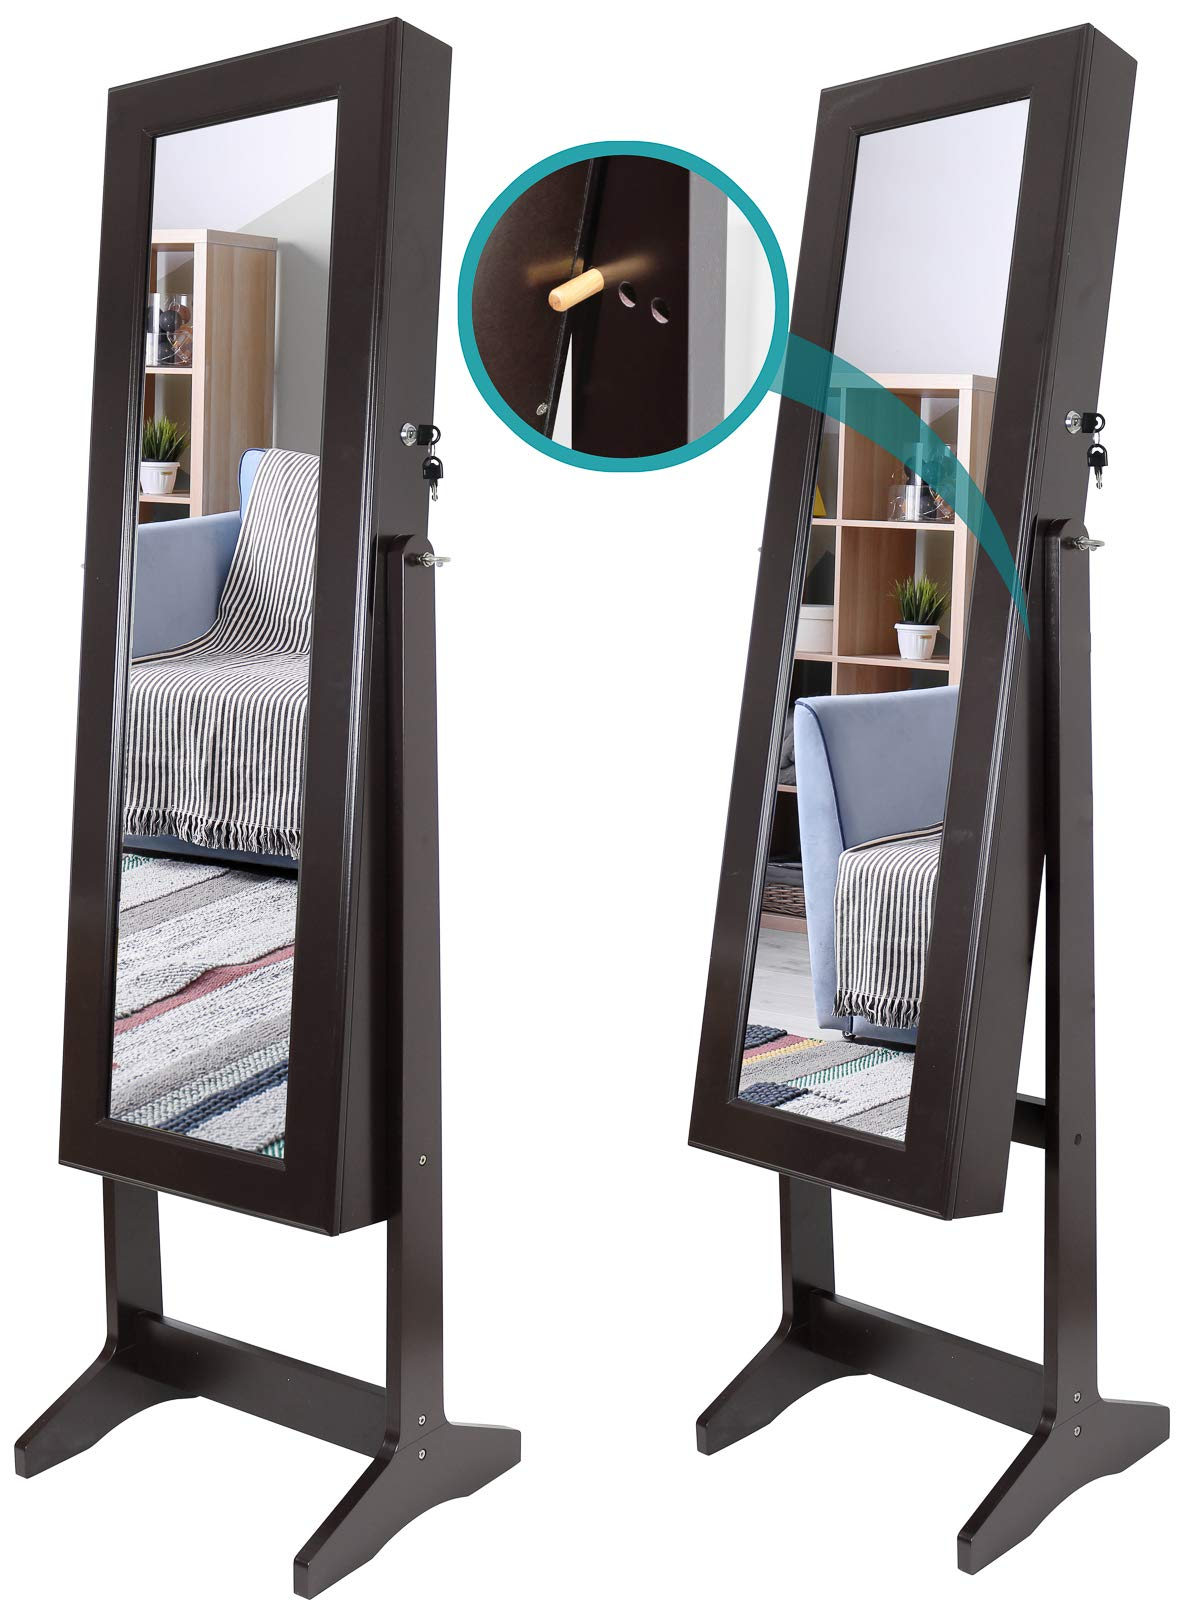 Greenco Free Standing Jewelry Organizer Armoire with Large Mirror and Led Lights, Lockable, Espresso